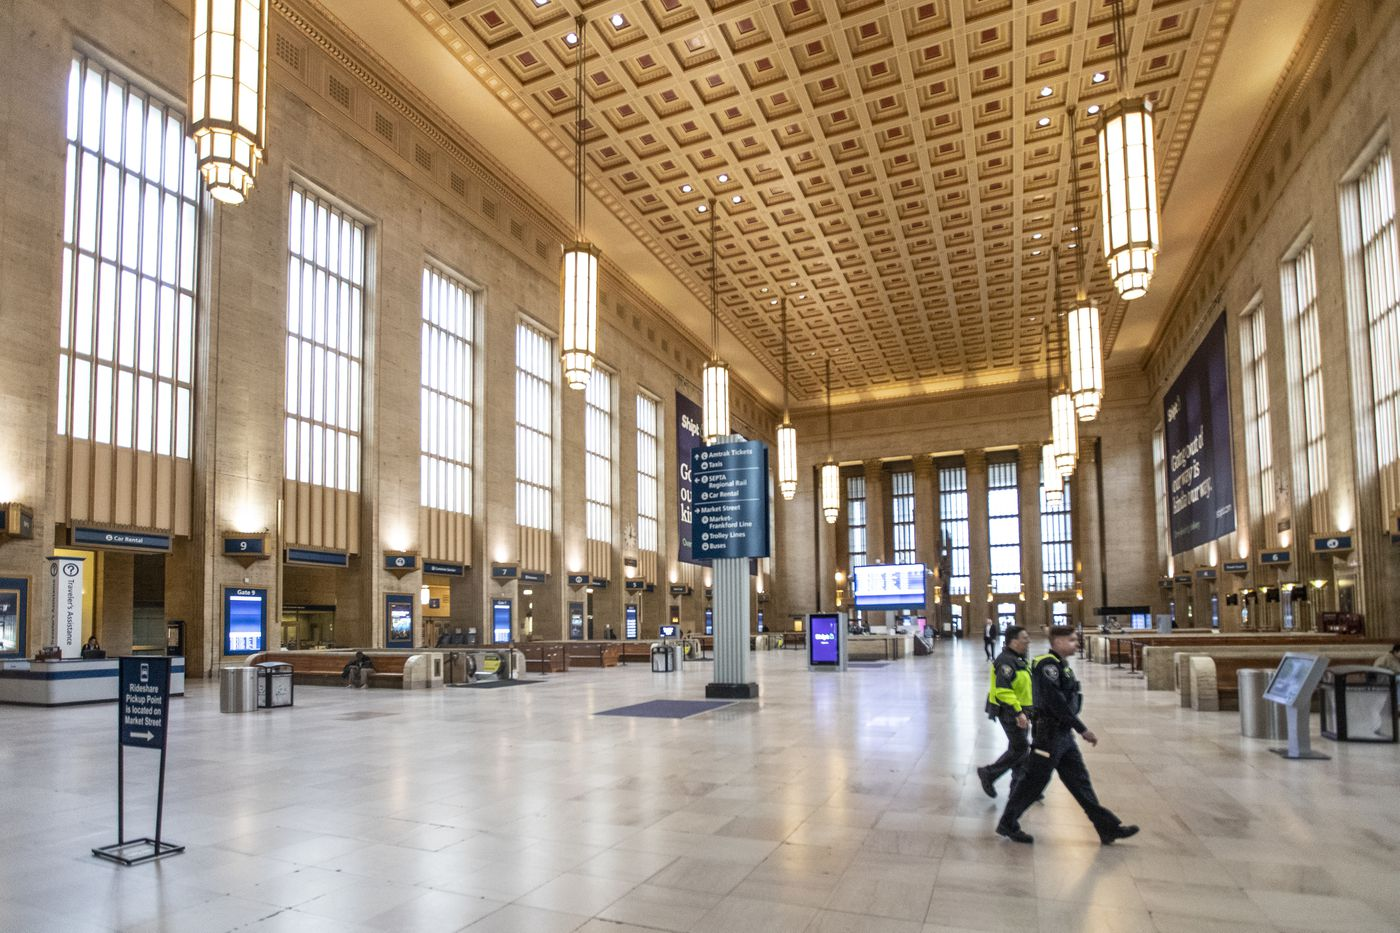 Amtrak Police walk through an almost empty 30th Street Station on March 23, 2020, the first day of the stay at home policy mandated by Philadelphia City Mayor Jim Kenney as an answer to the growing coronavirus.